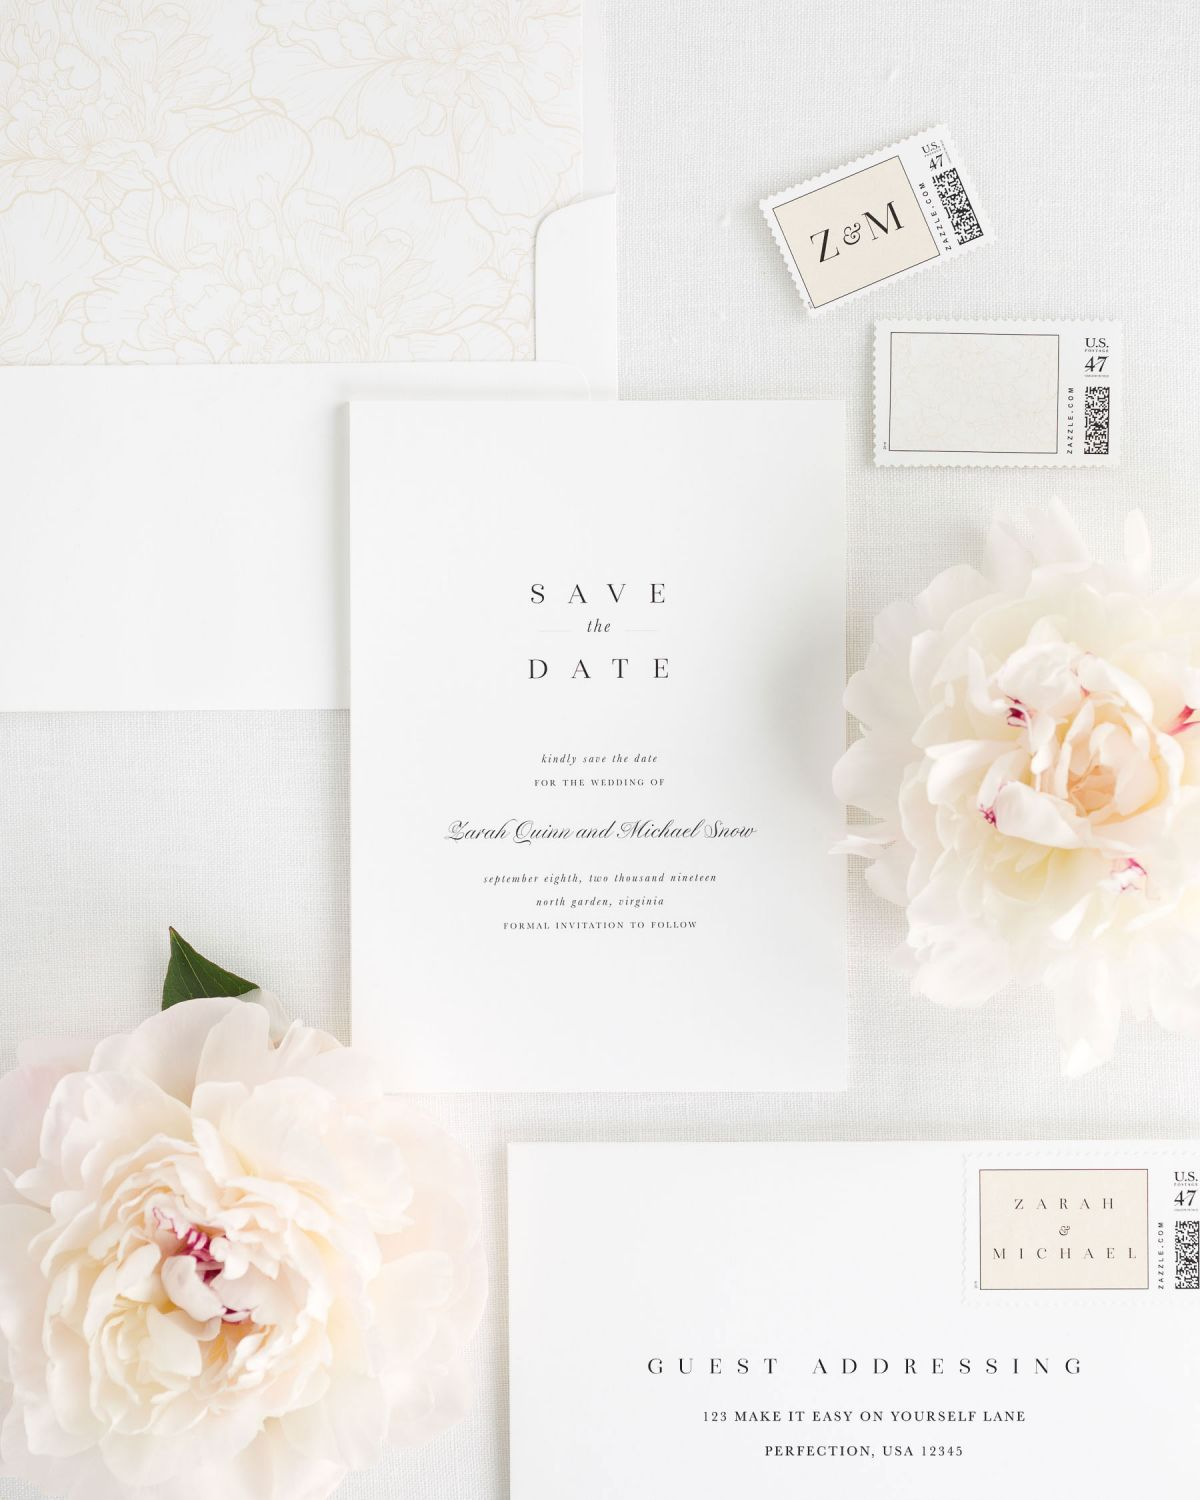 Elegant Save the Dates with Guest Addressing and Custom Postage